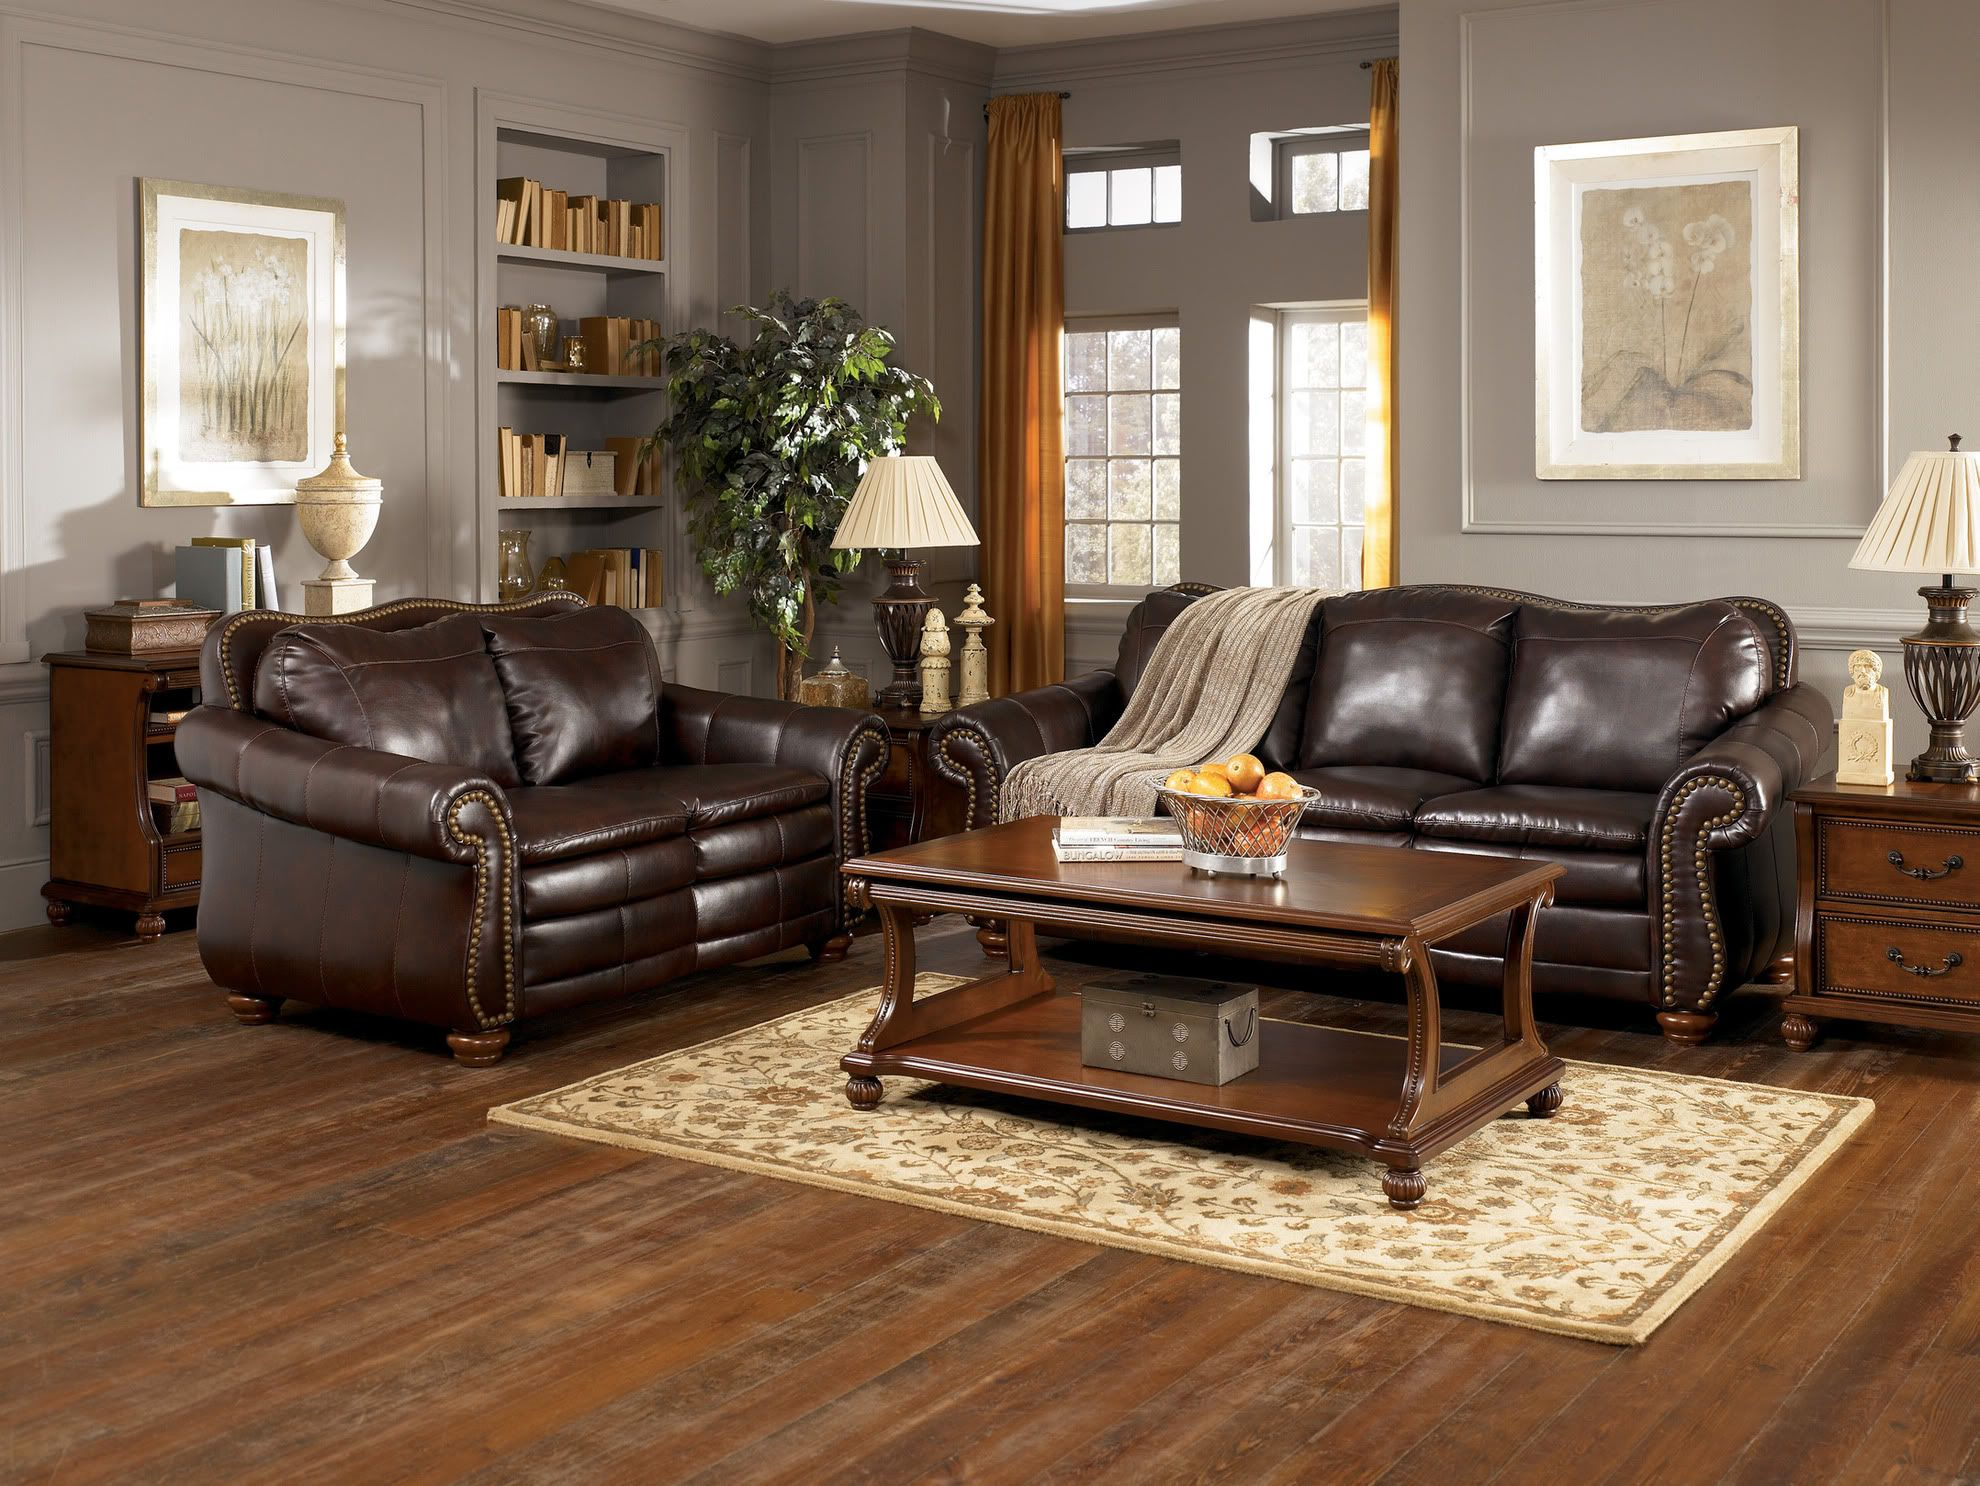 Wall Colors For Brown Leather Furniture Fetching Grey Living Room With Brown Furniture Design